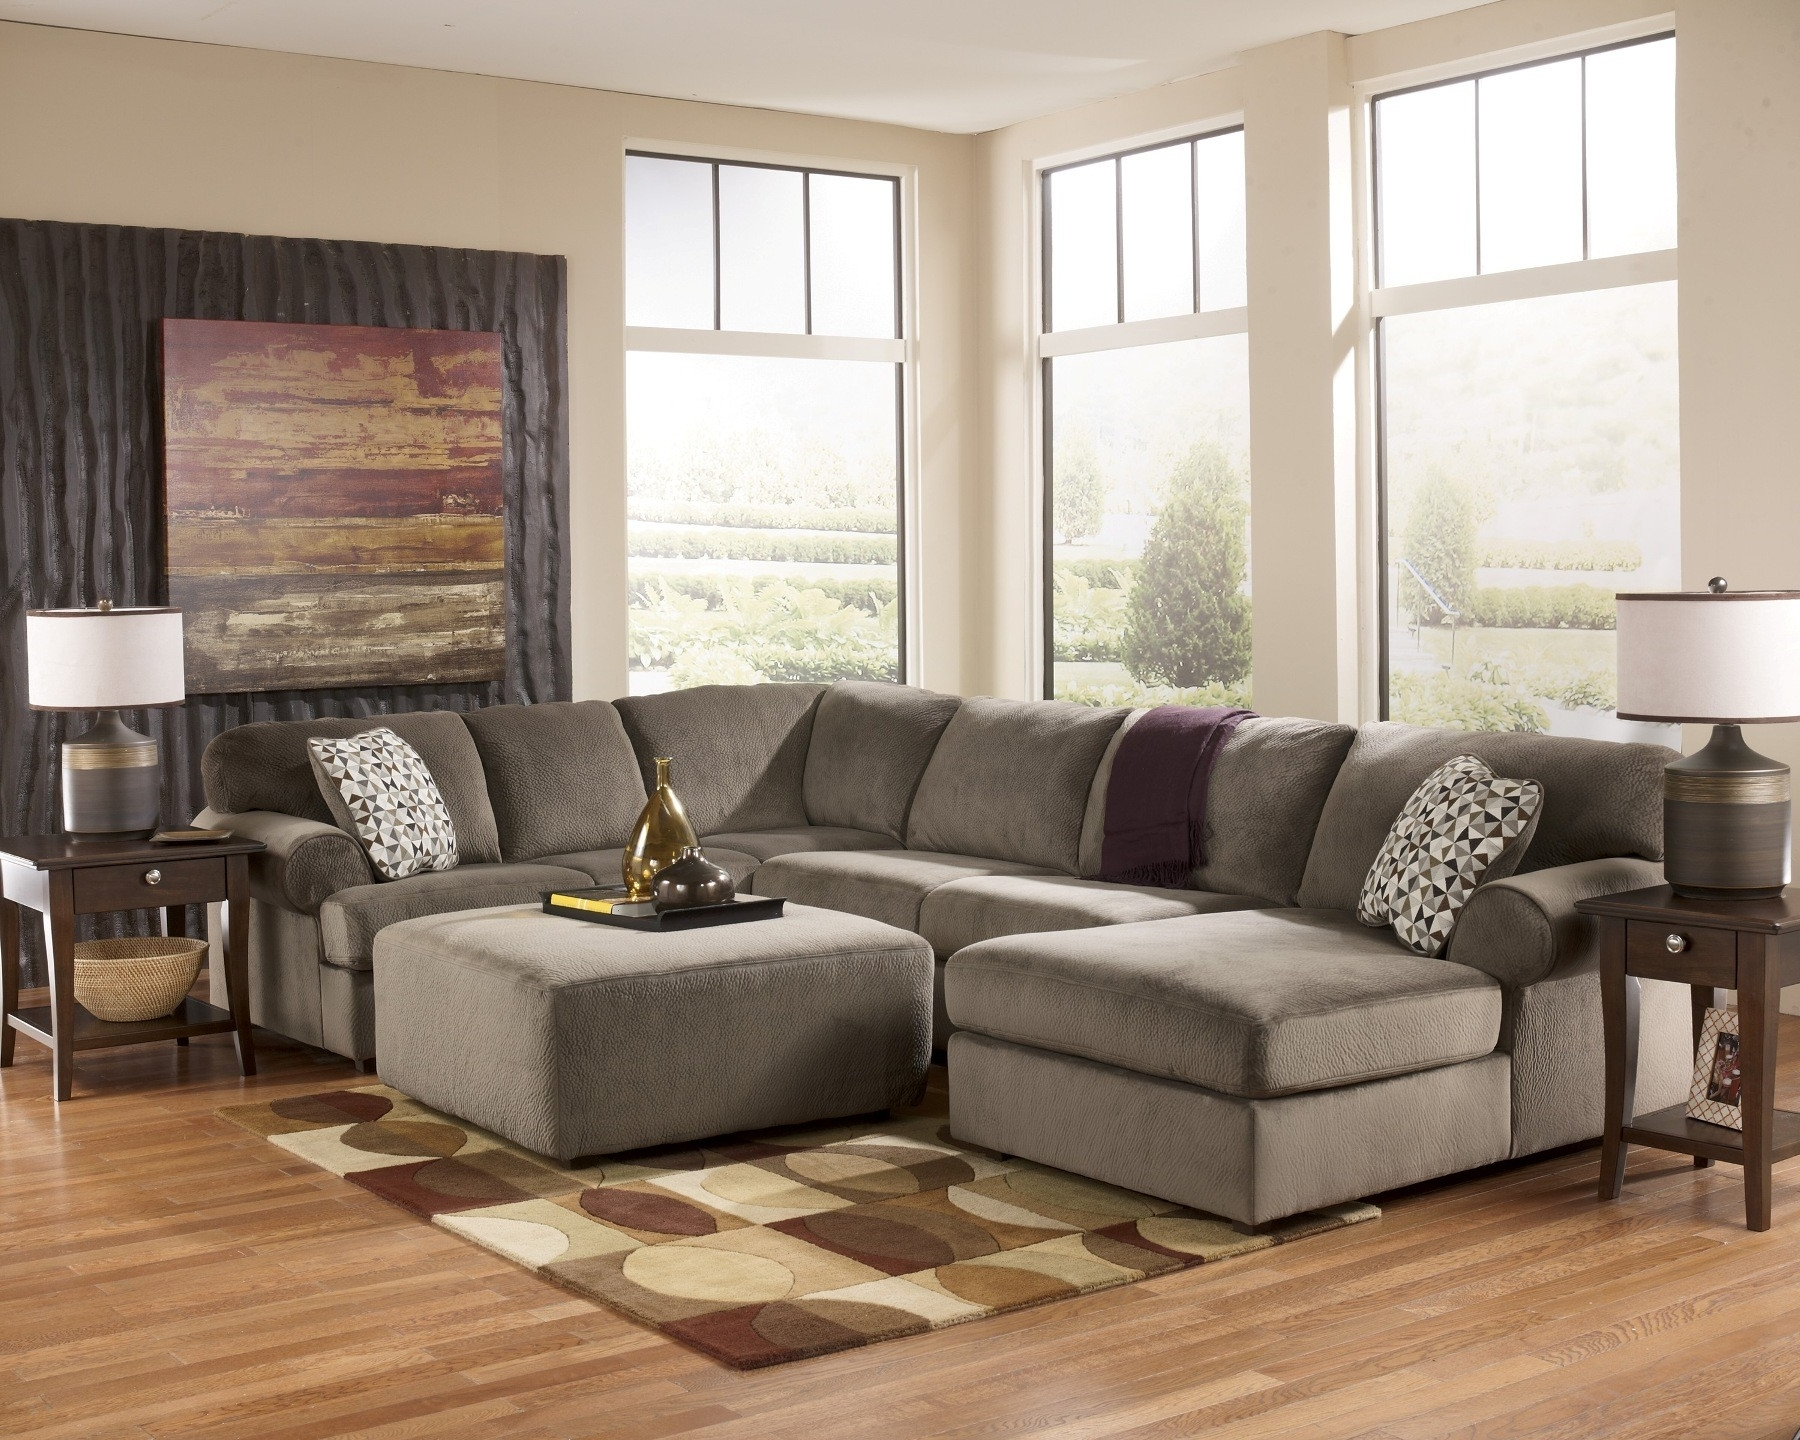 El Paso Texas Sectional Sofas For Recent Asc Furniture – El Paso, Tx (View 3 of 20)